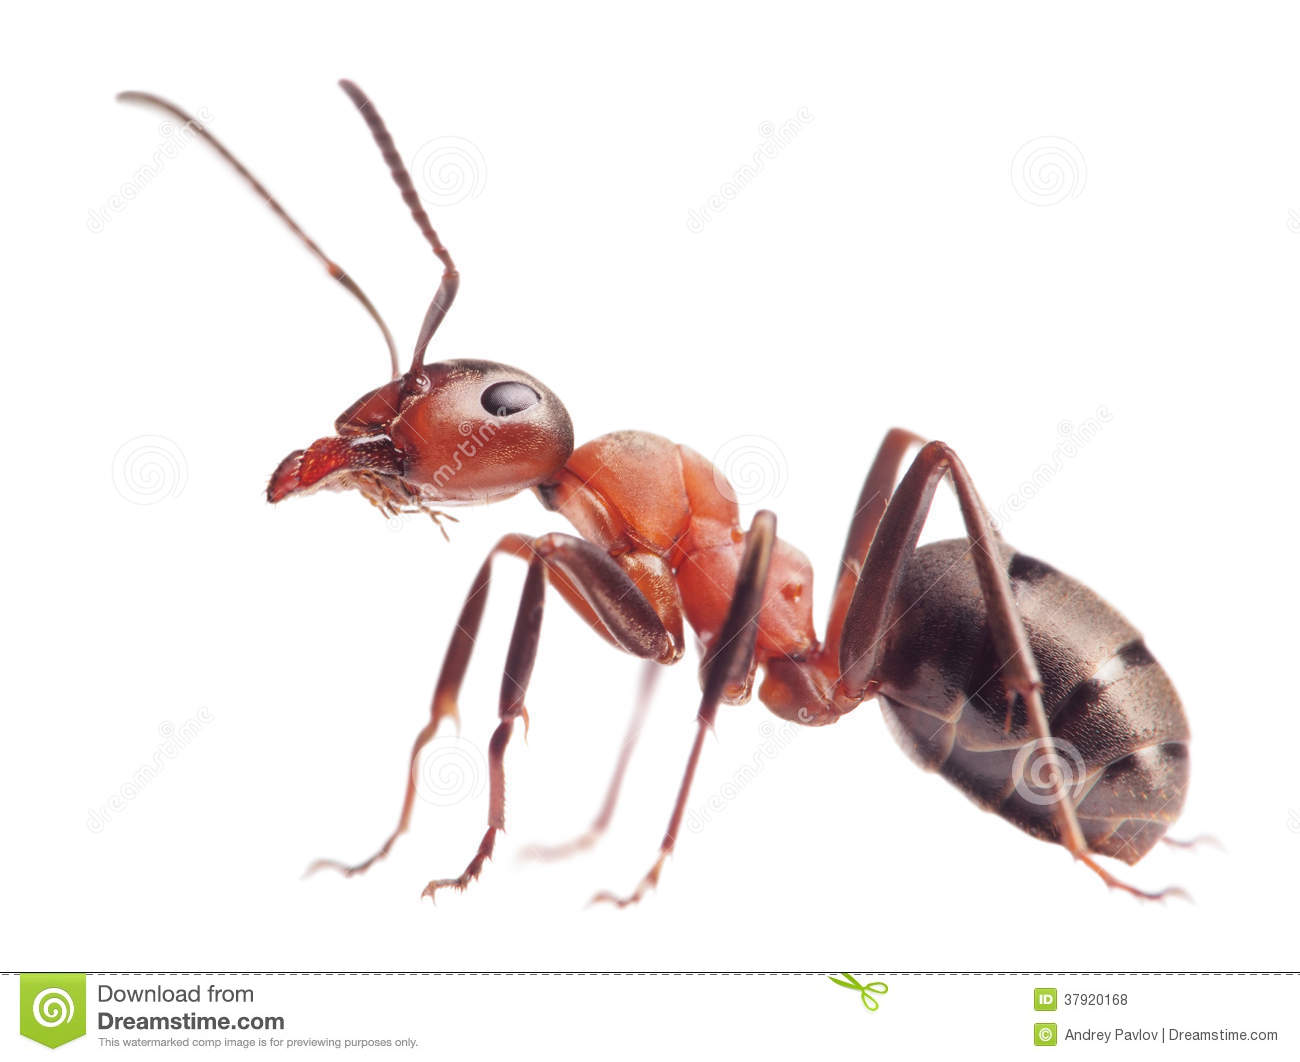 Ant Formica Rufa On White Royalty Free Stock Photos - Image: 37920168